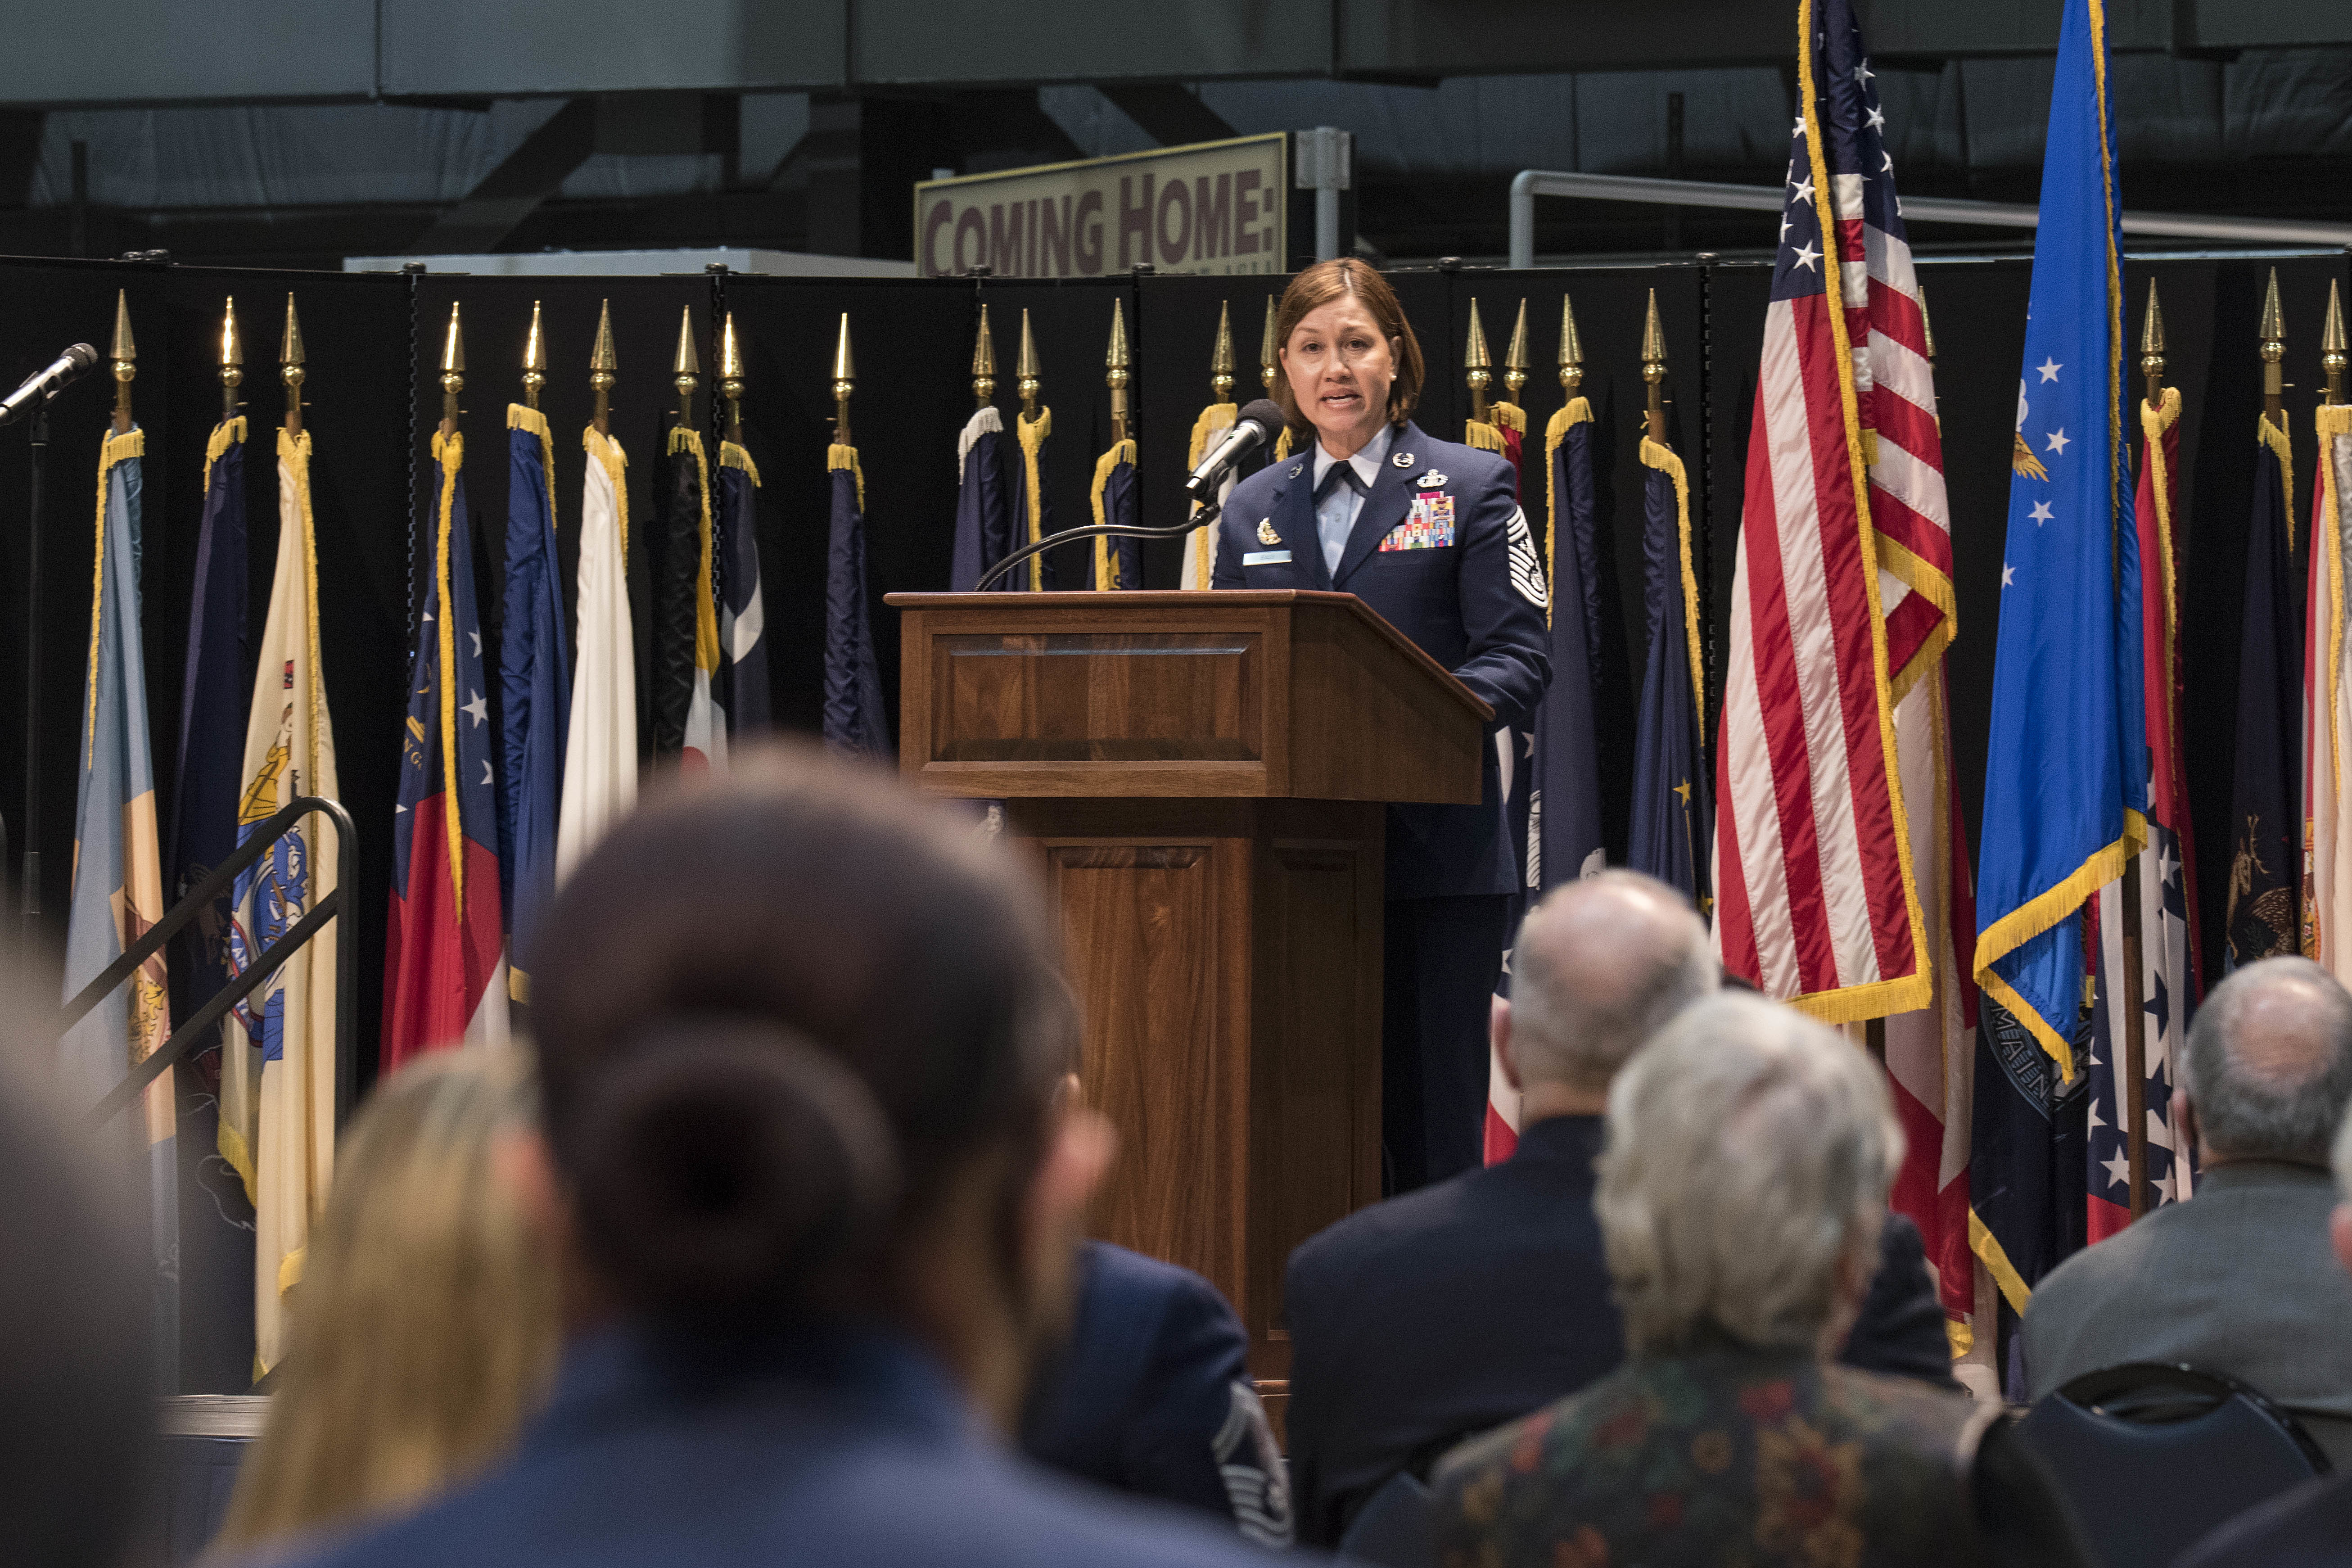 CMSgt Bass speaking at ceremony